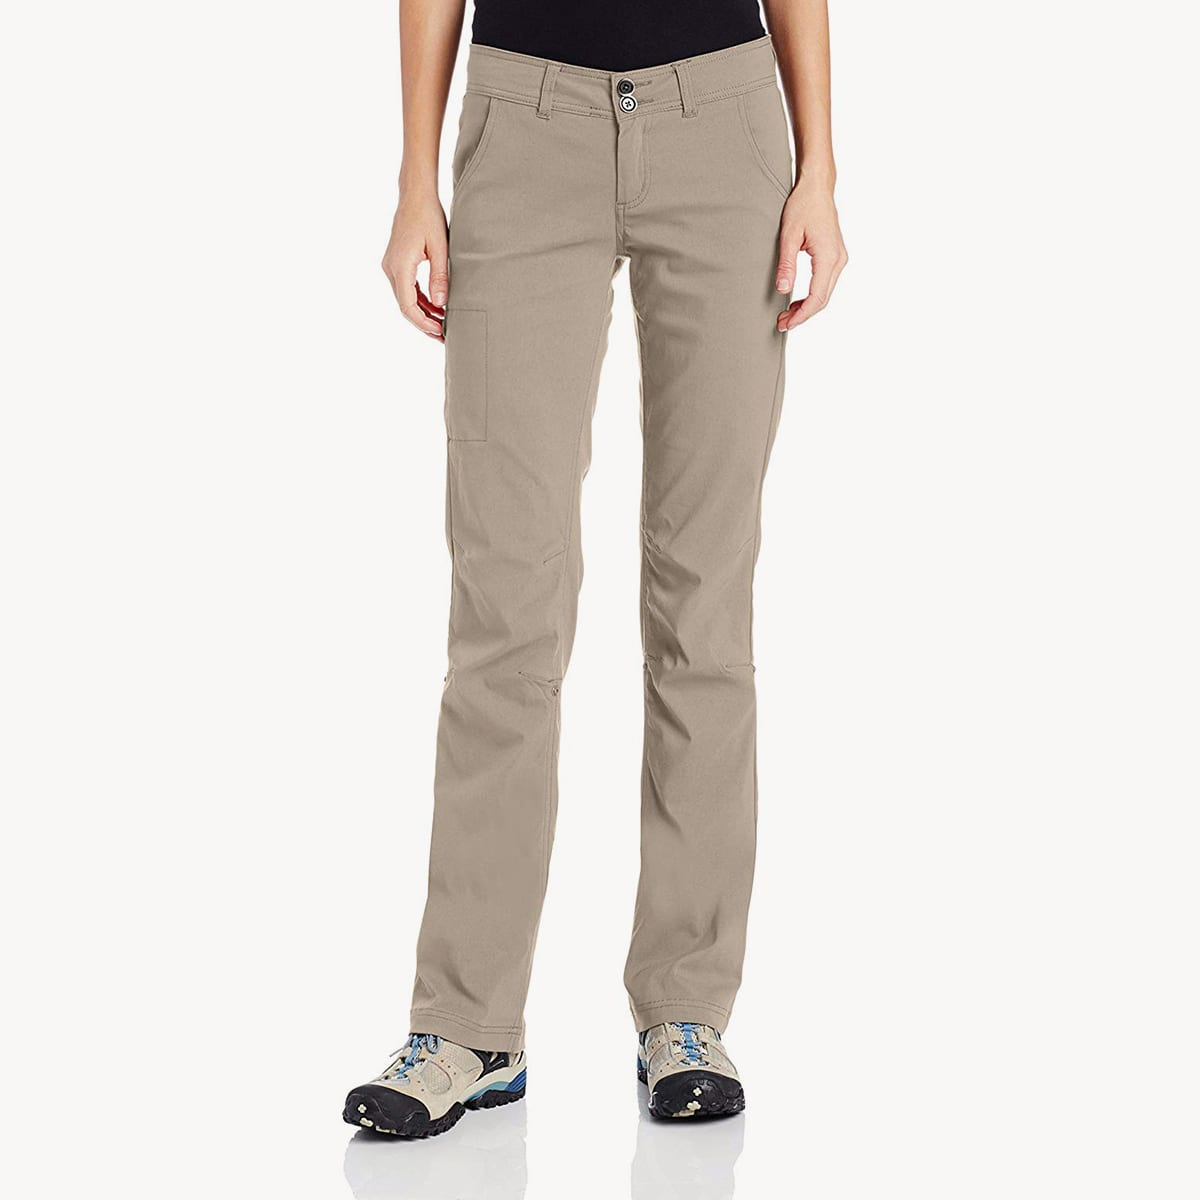 d890330056 Best Travel Pants: prAna Women's Regular Inseam Halle Pant($85)